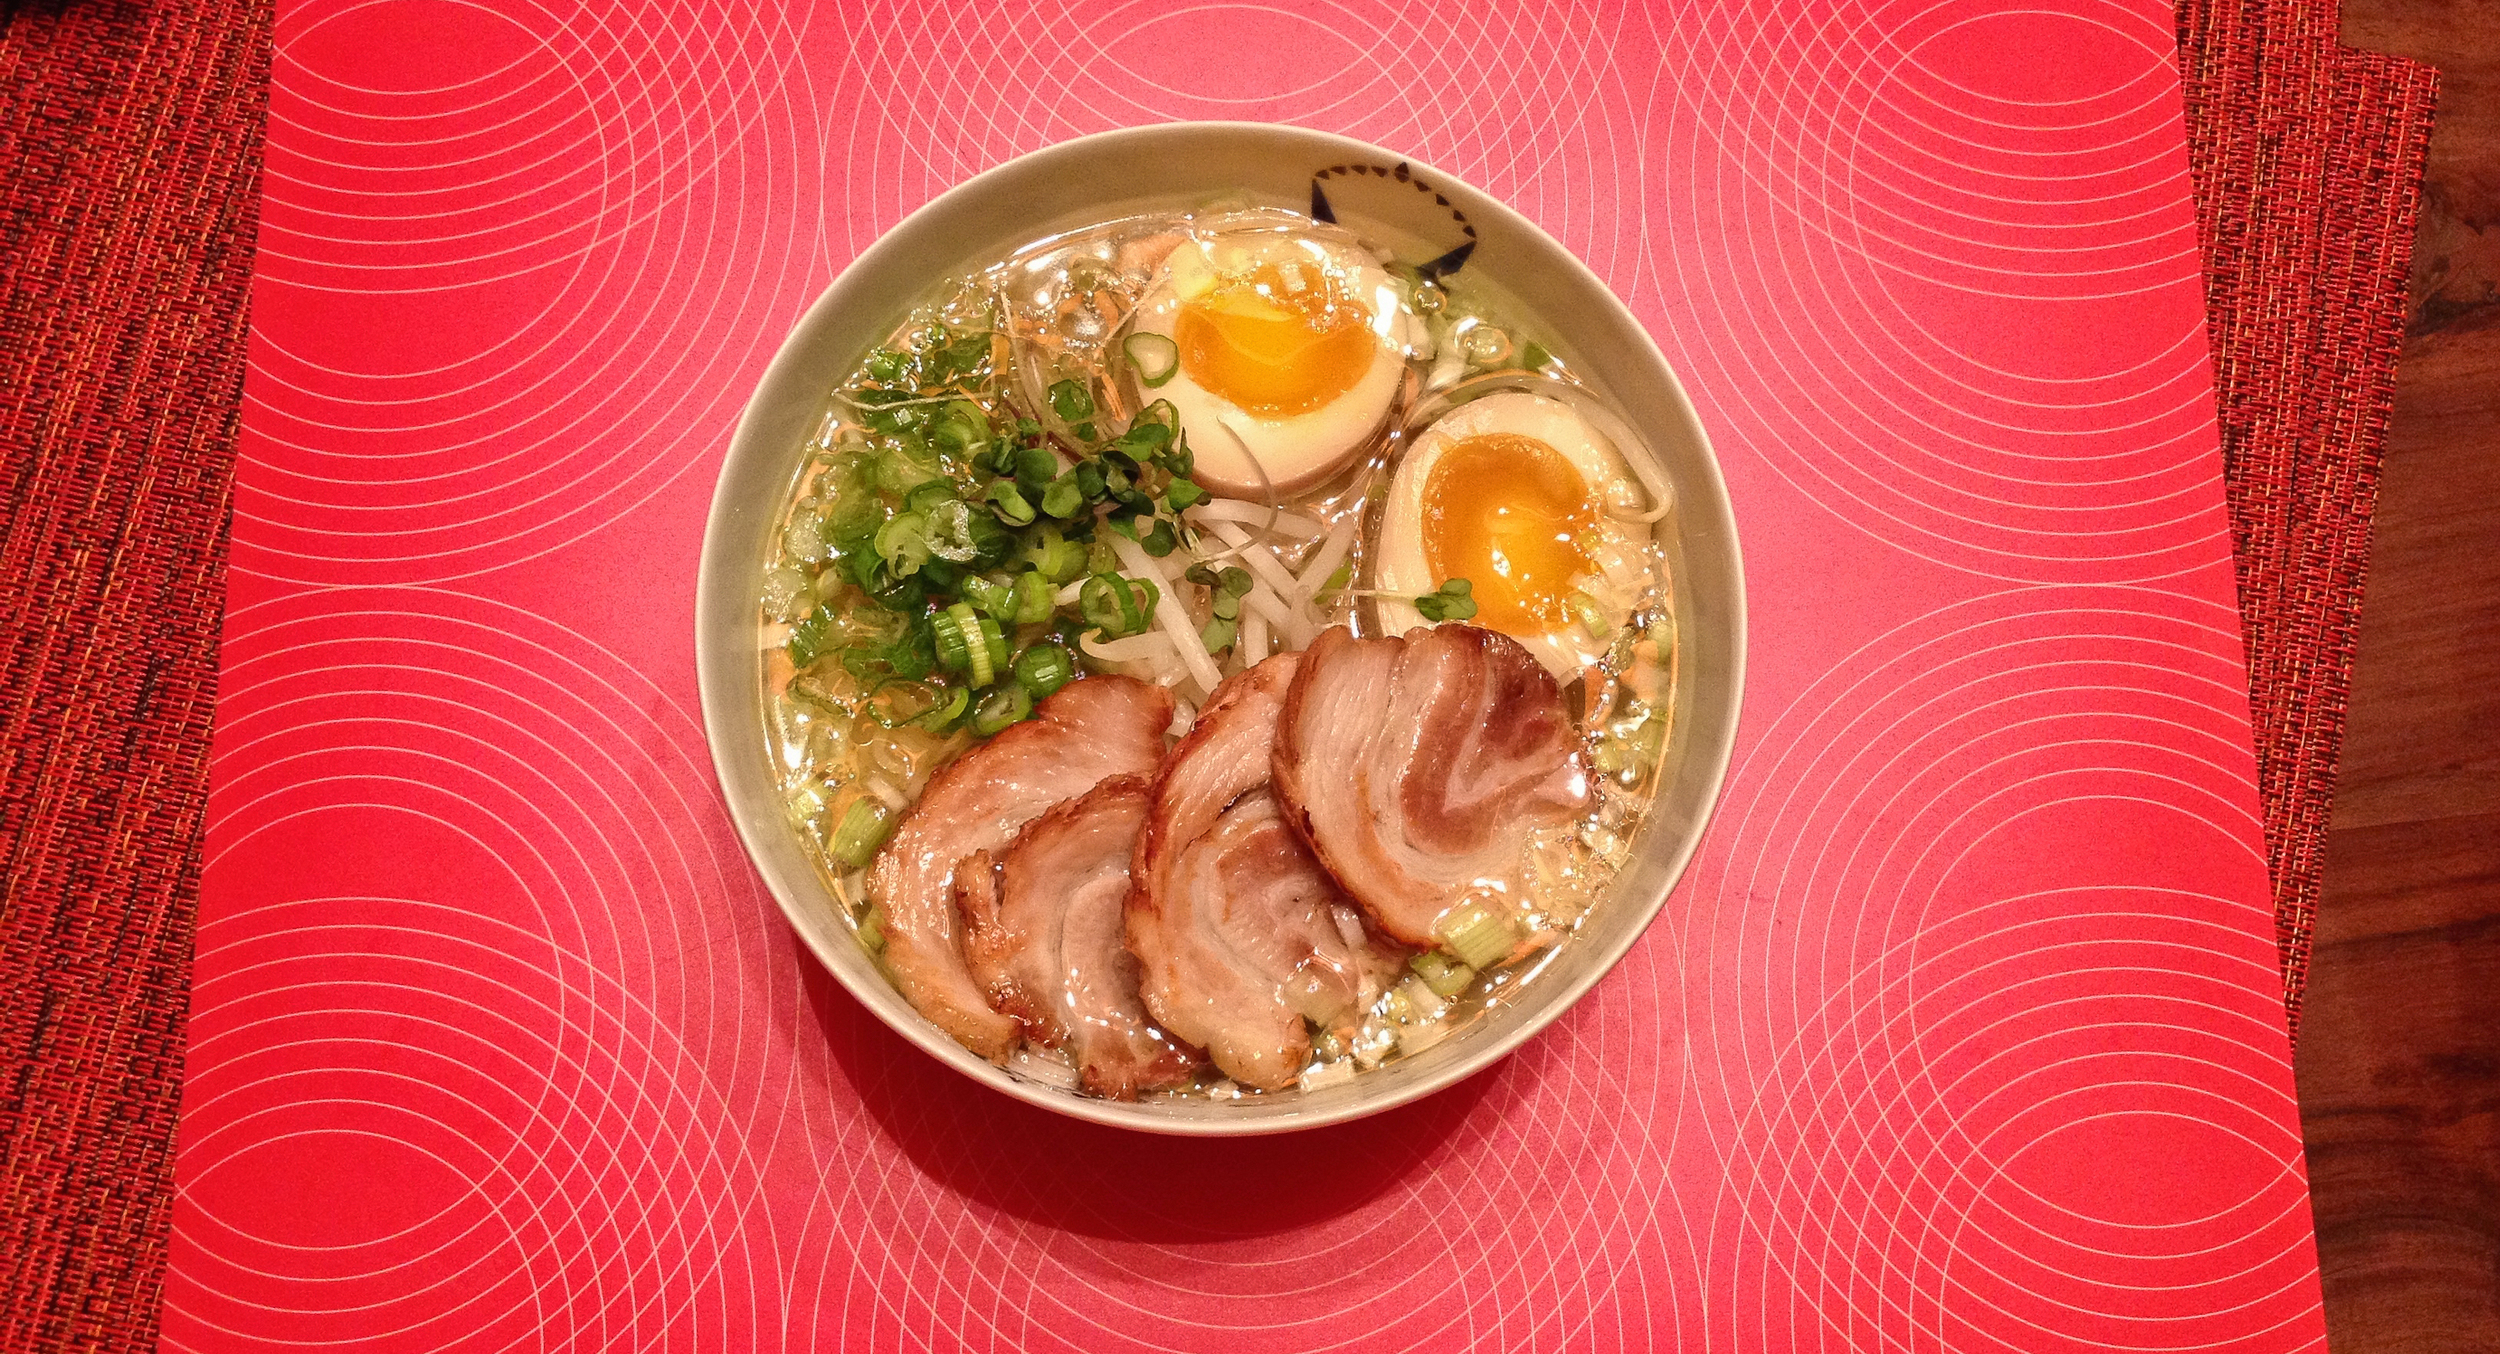 Chicken soup doesn't seem complete without a pile of pork on top. Some of our ramen, November 2014.